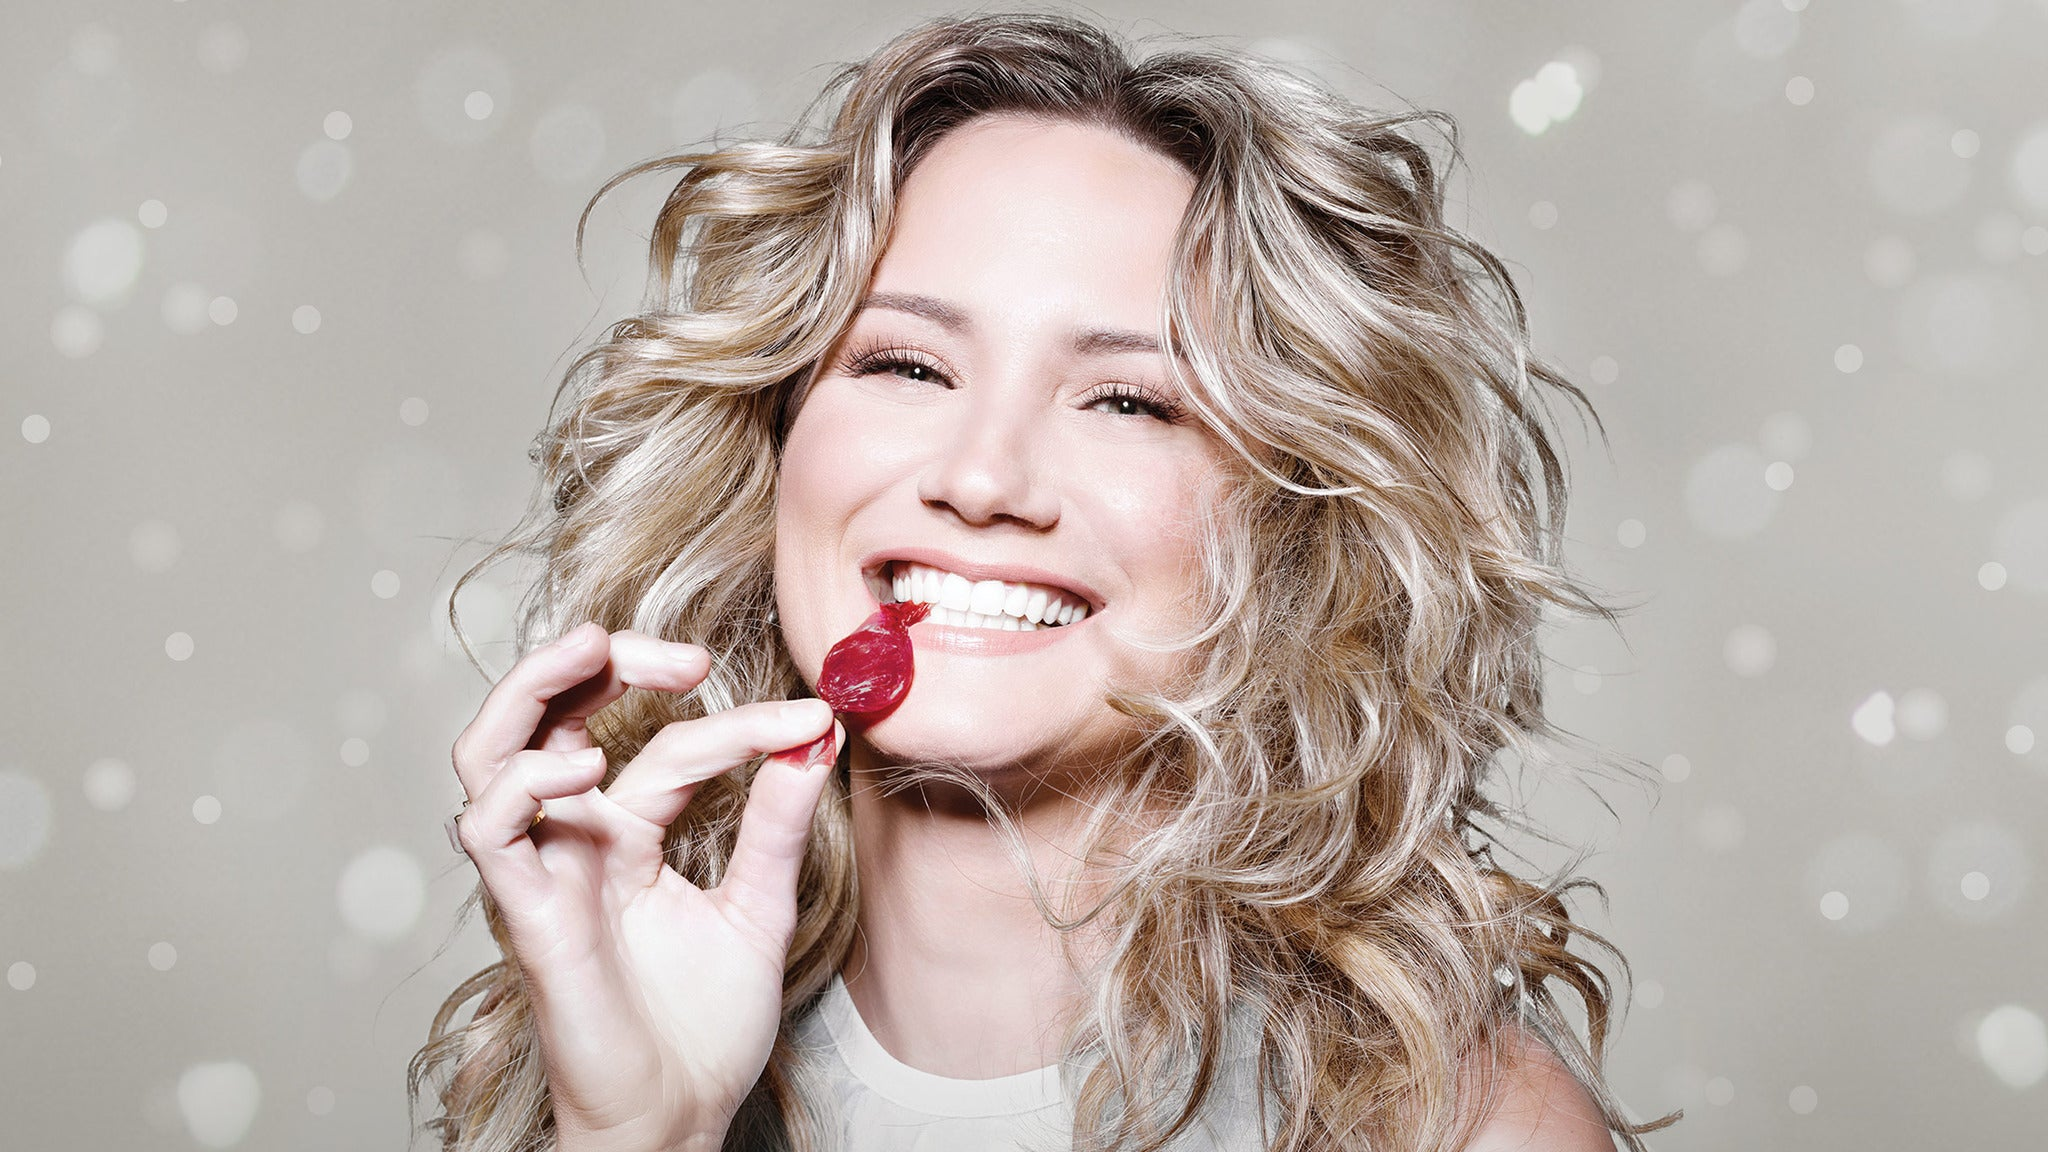 Jennifer Nettles at L'Auberge Casino Resort Lake Charles - Lake Charles, LA 70601